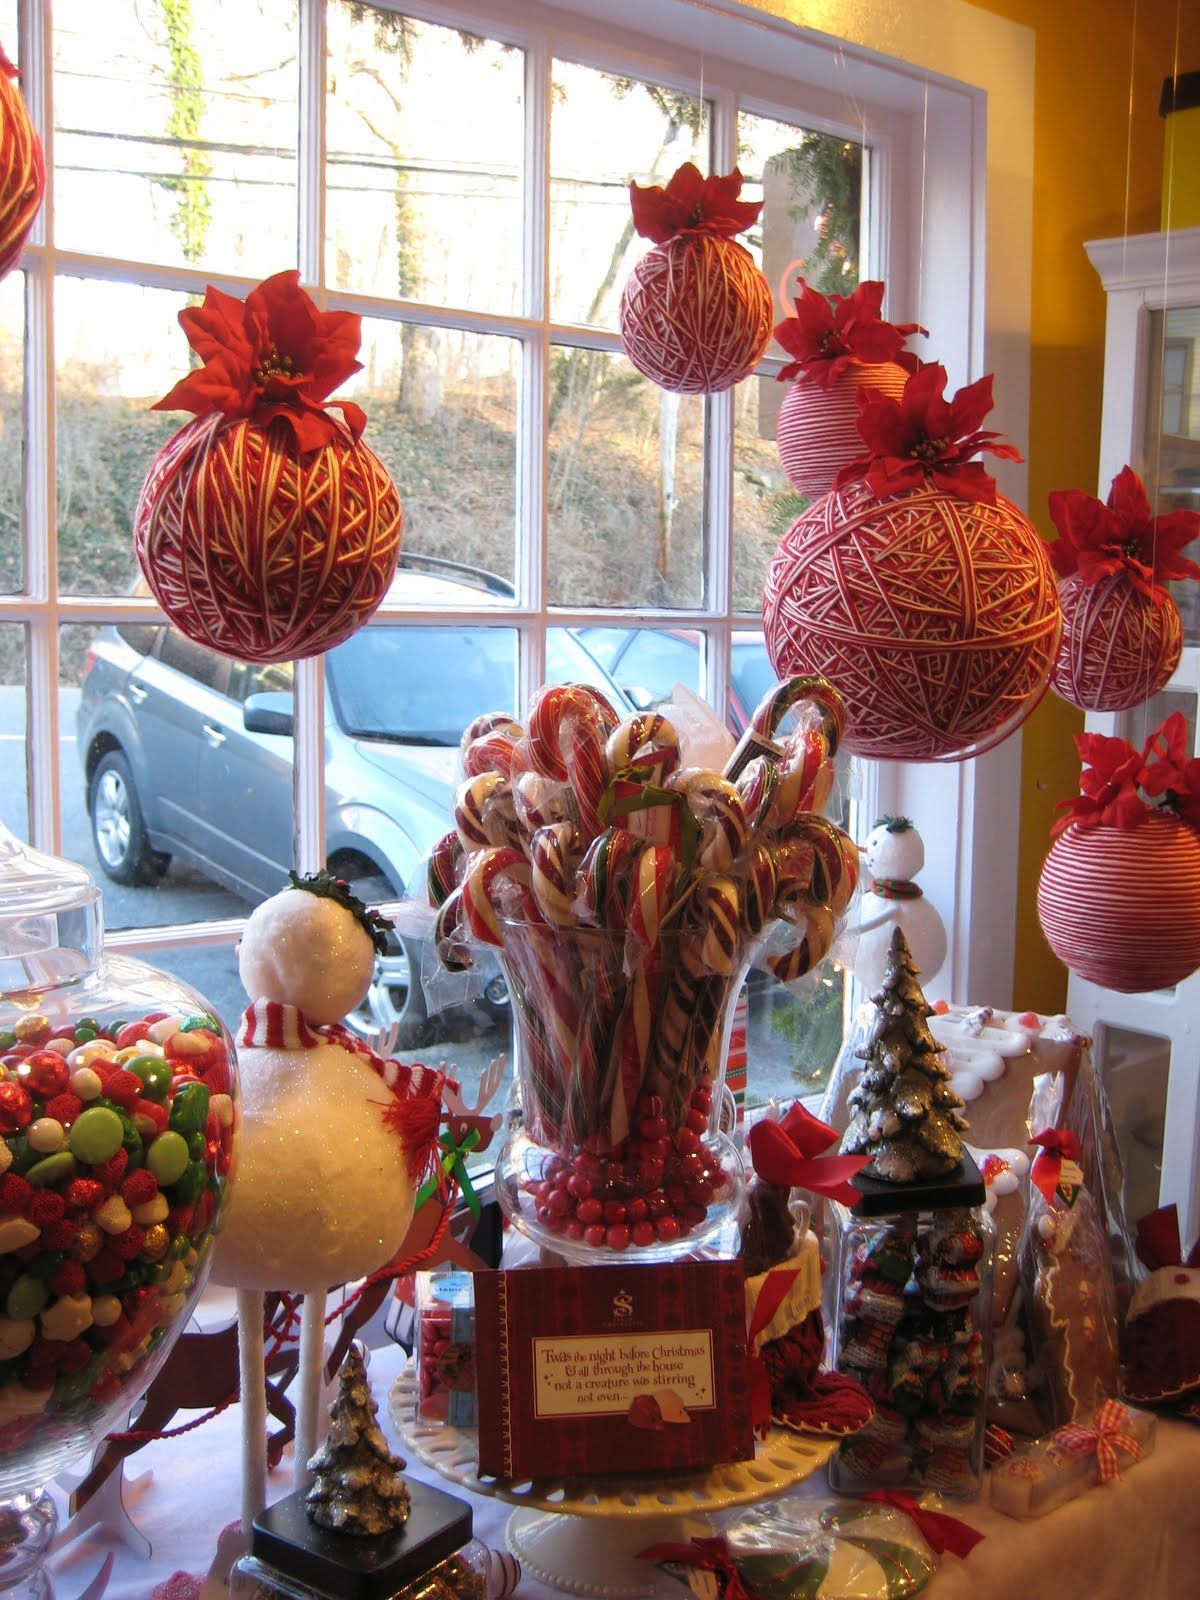 mmmmm candy canes... i also like the yarn balls that gives